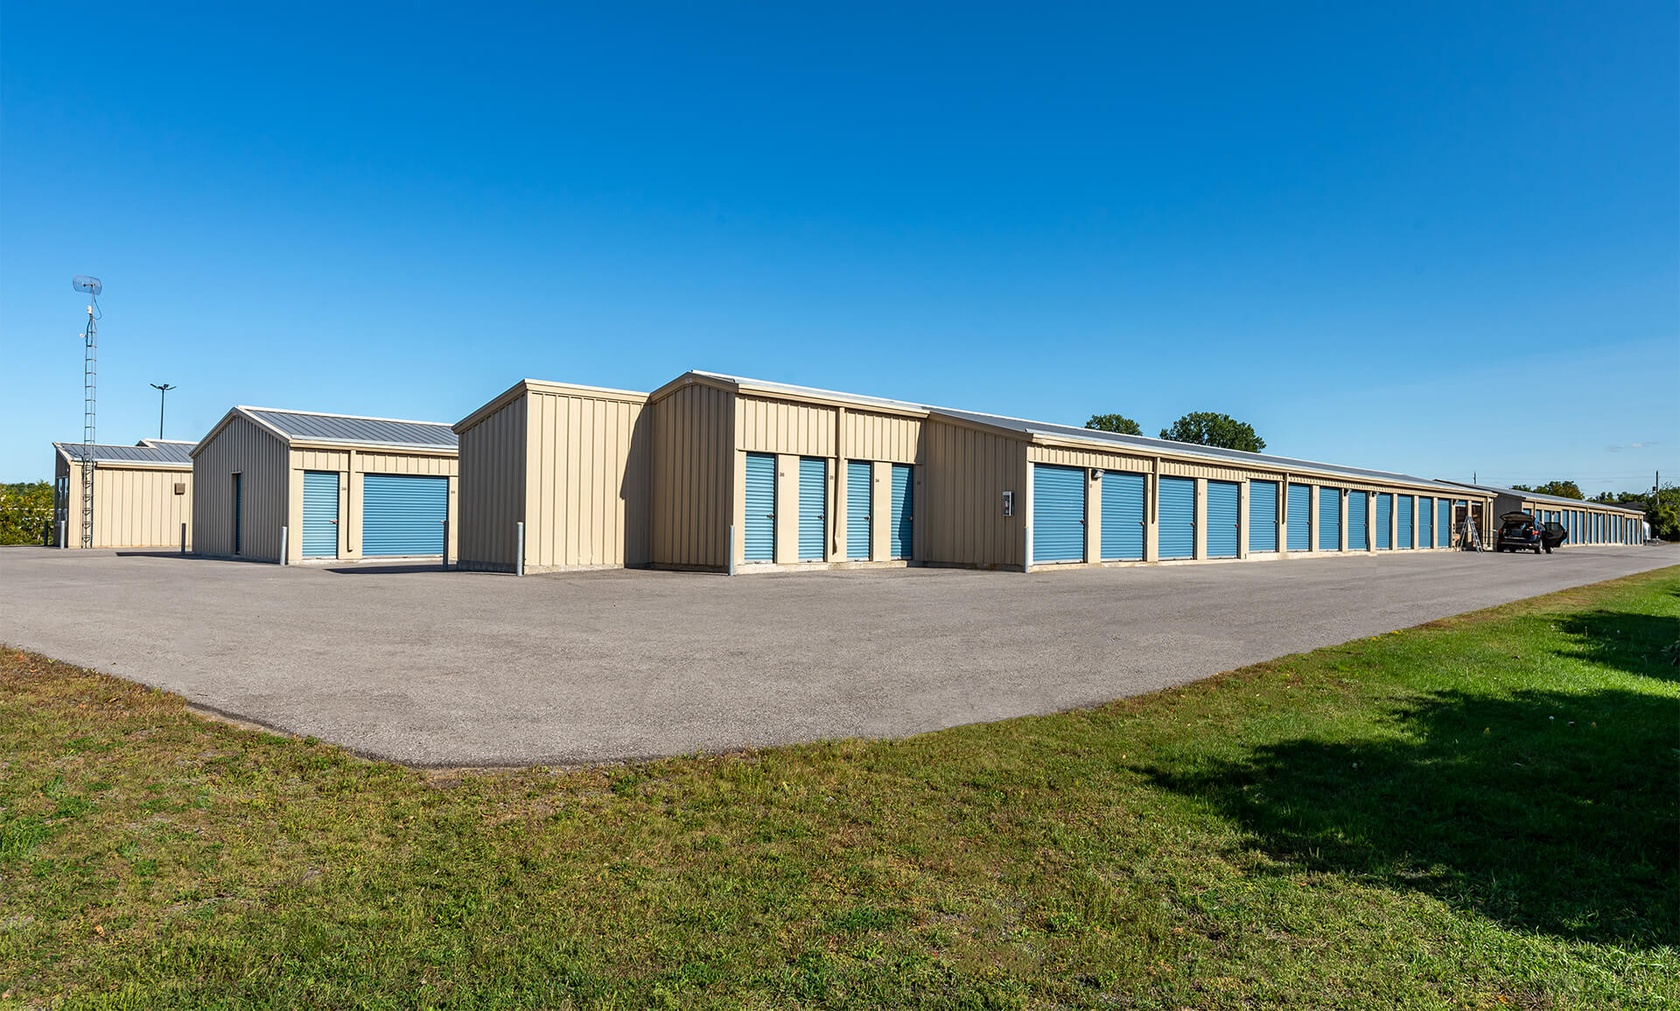 Rent Ottawa storage units at 3600 Uplands Dr. We offer a wide-range of affordable self storage units and your first 4 weeks are free!